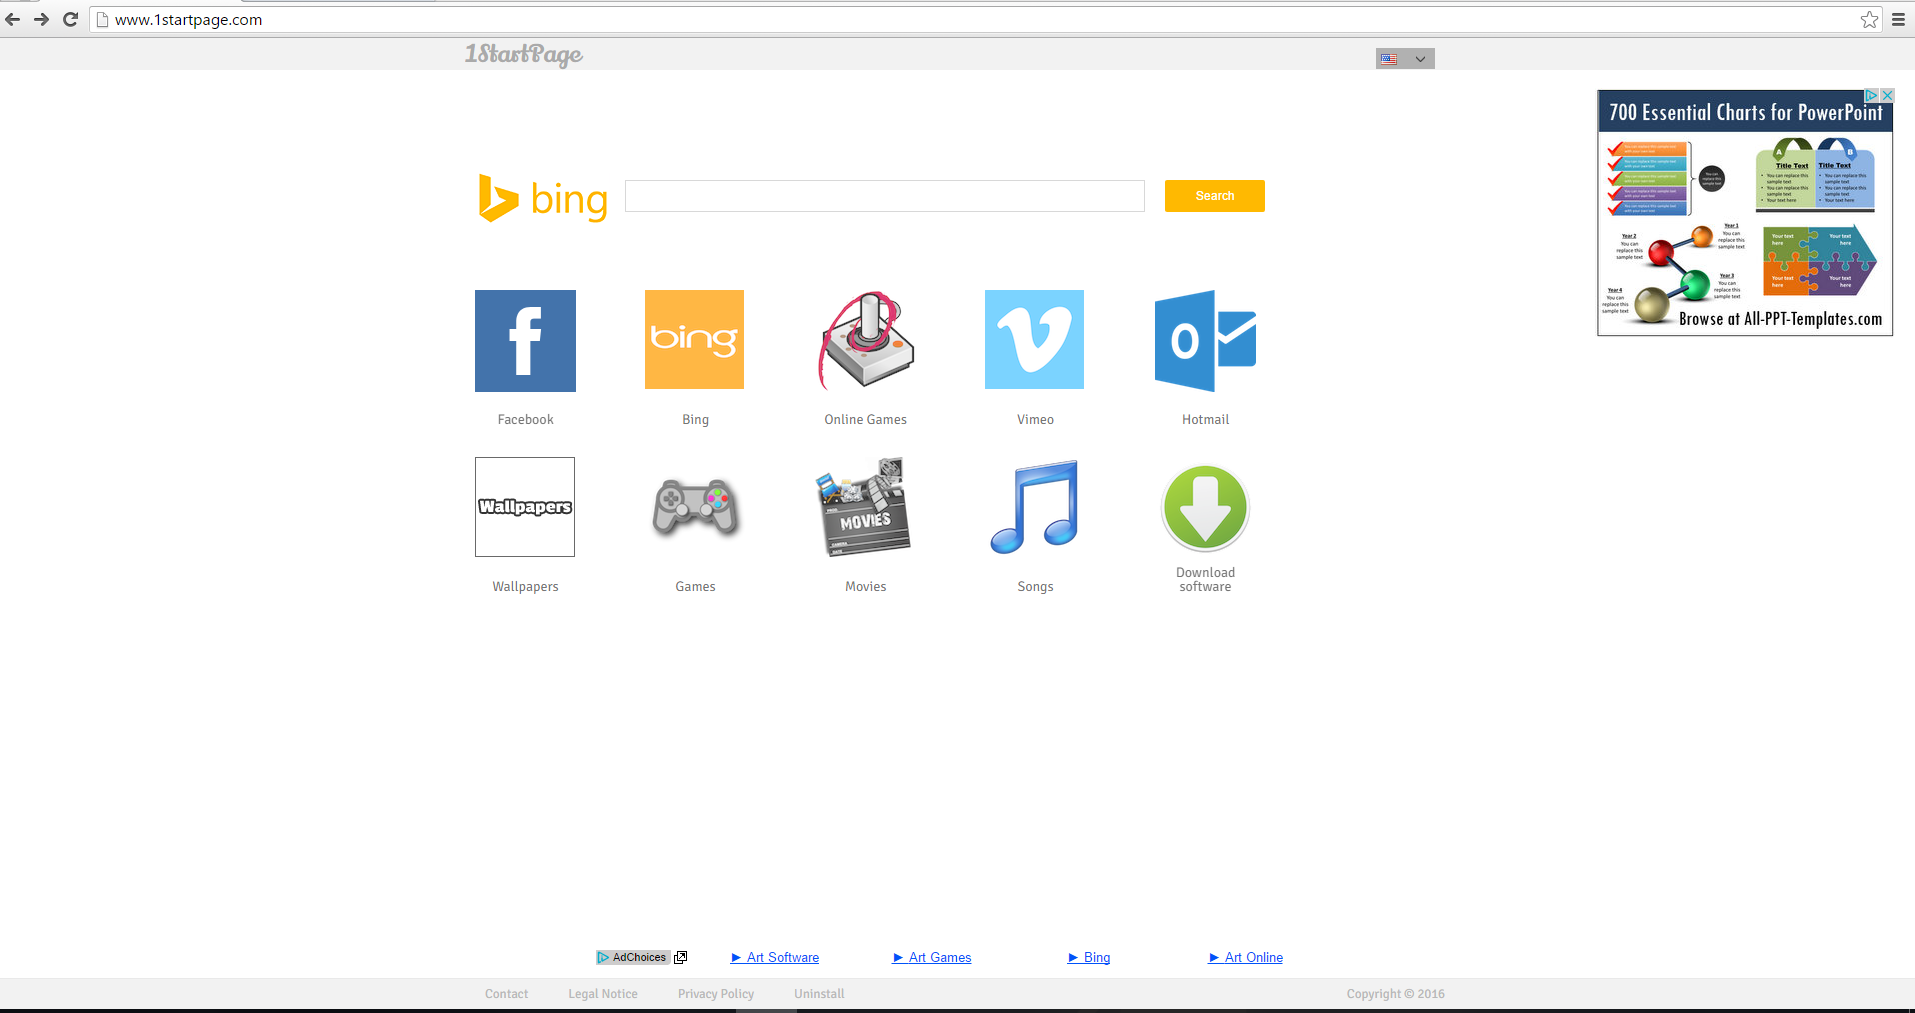 1startpage-homepage-search-engine-bestsecuritysearch